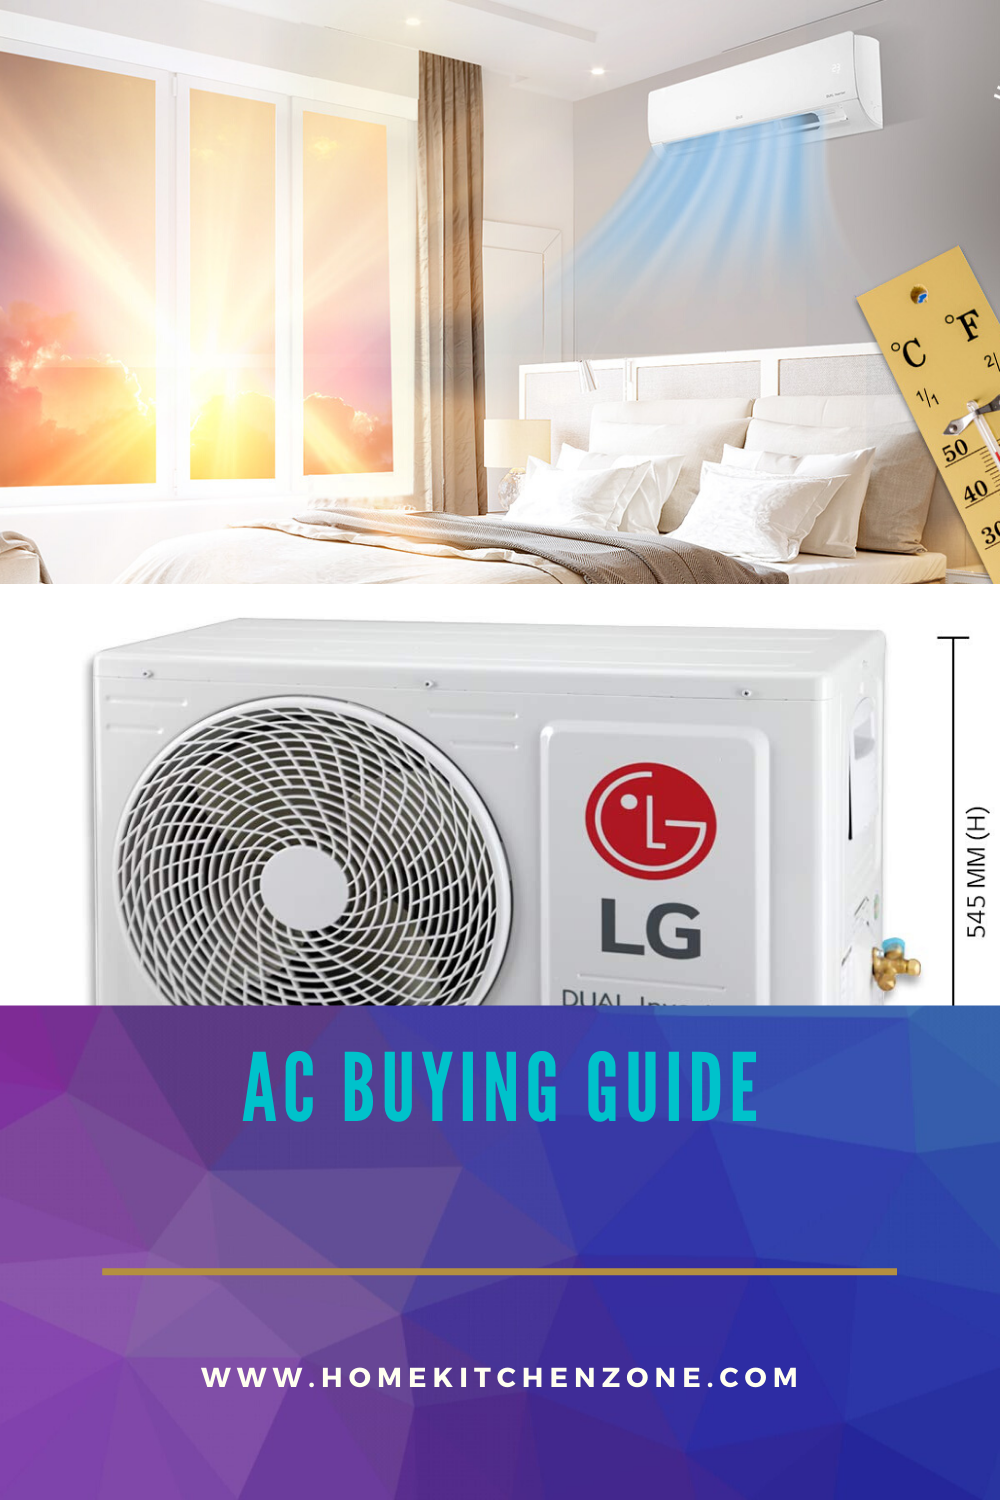 AC Buying Guide in 2020 Air conditioning companies